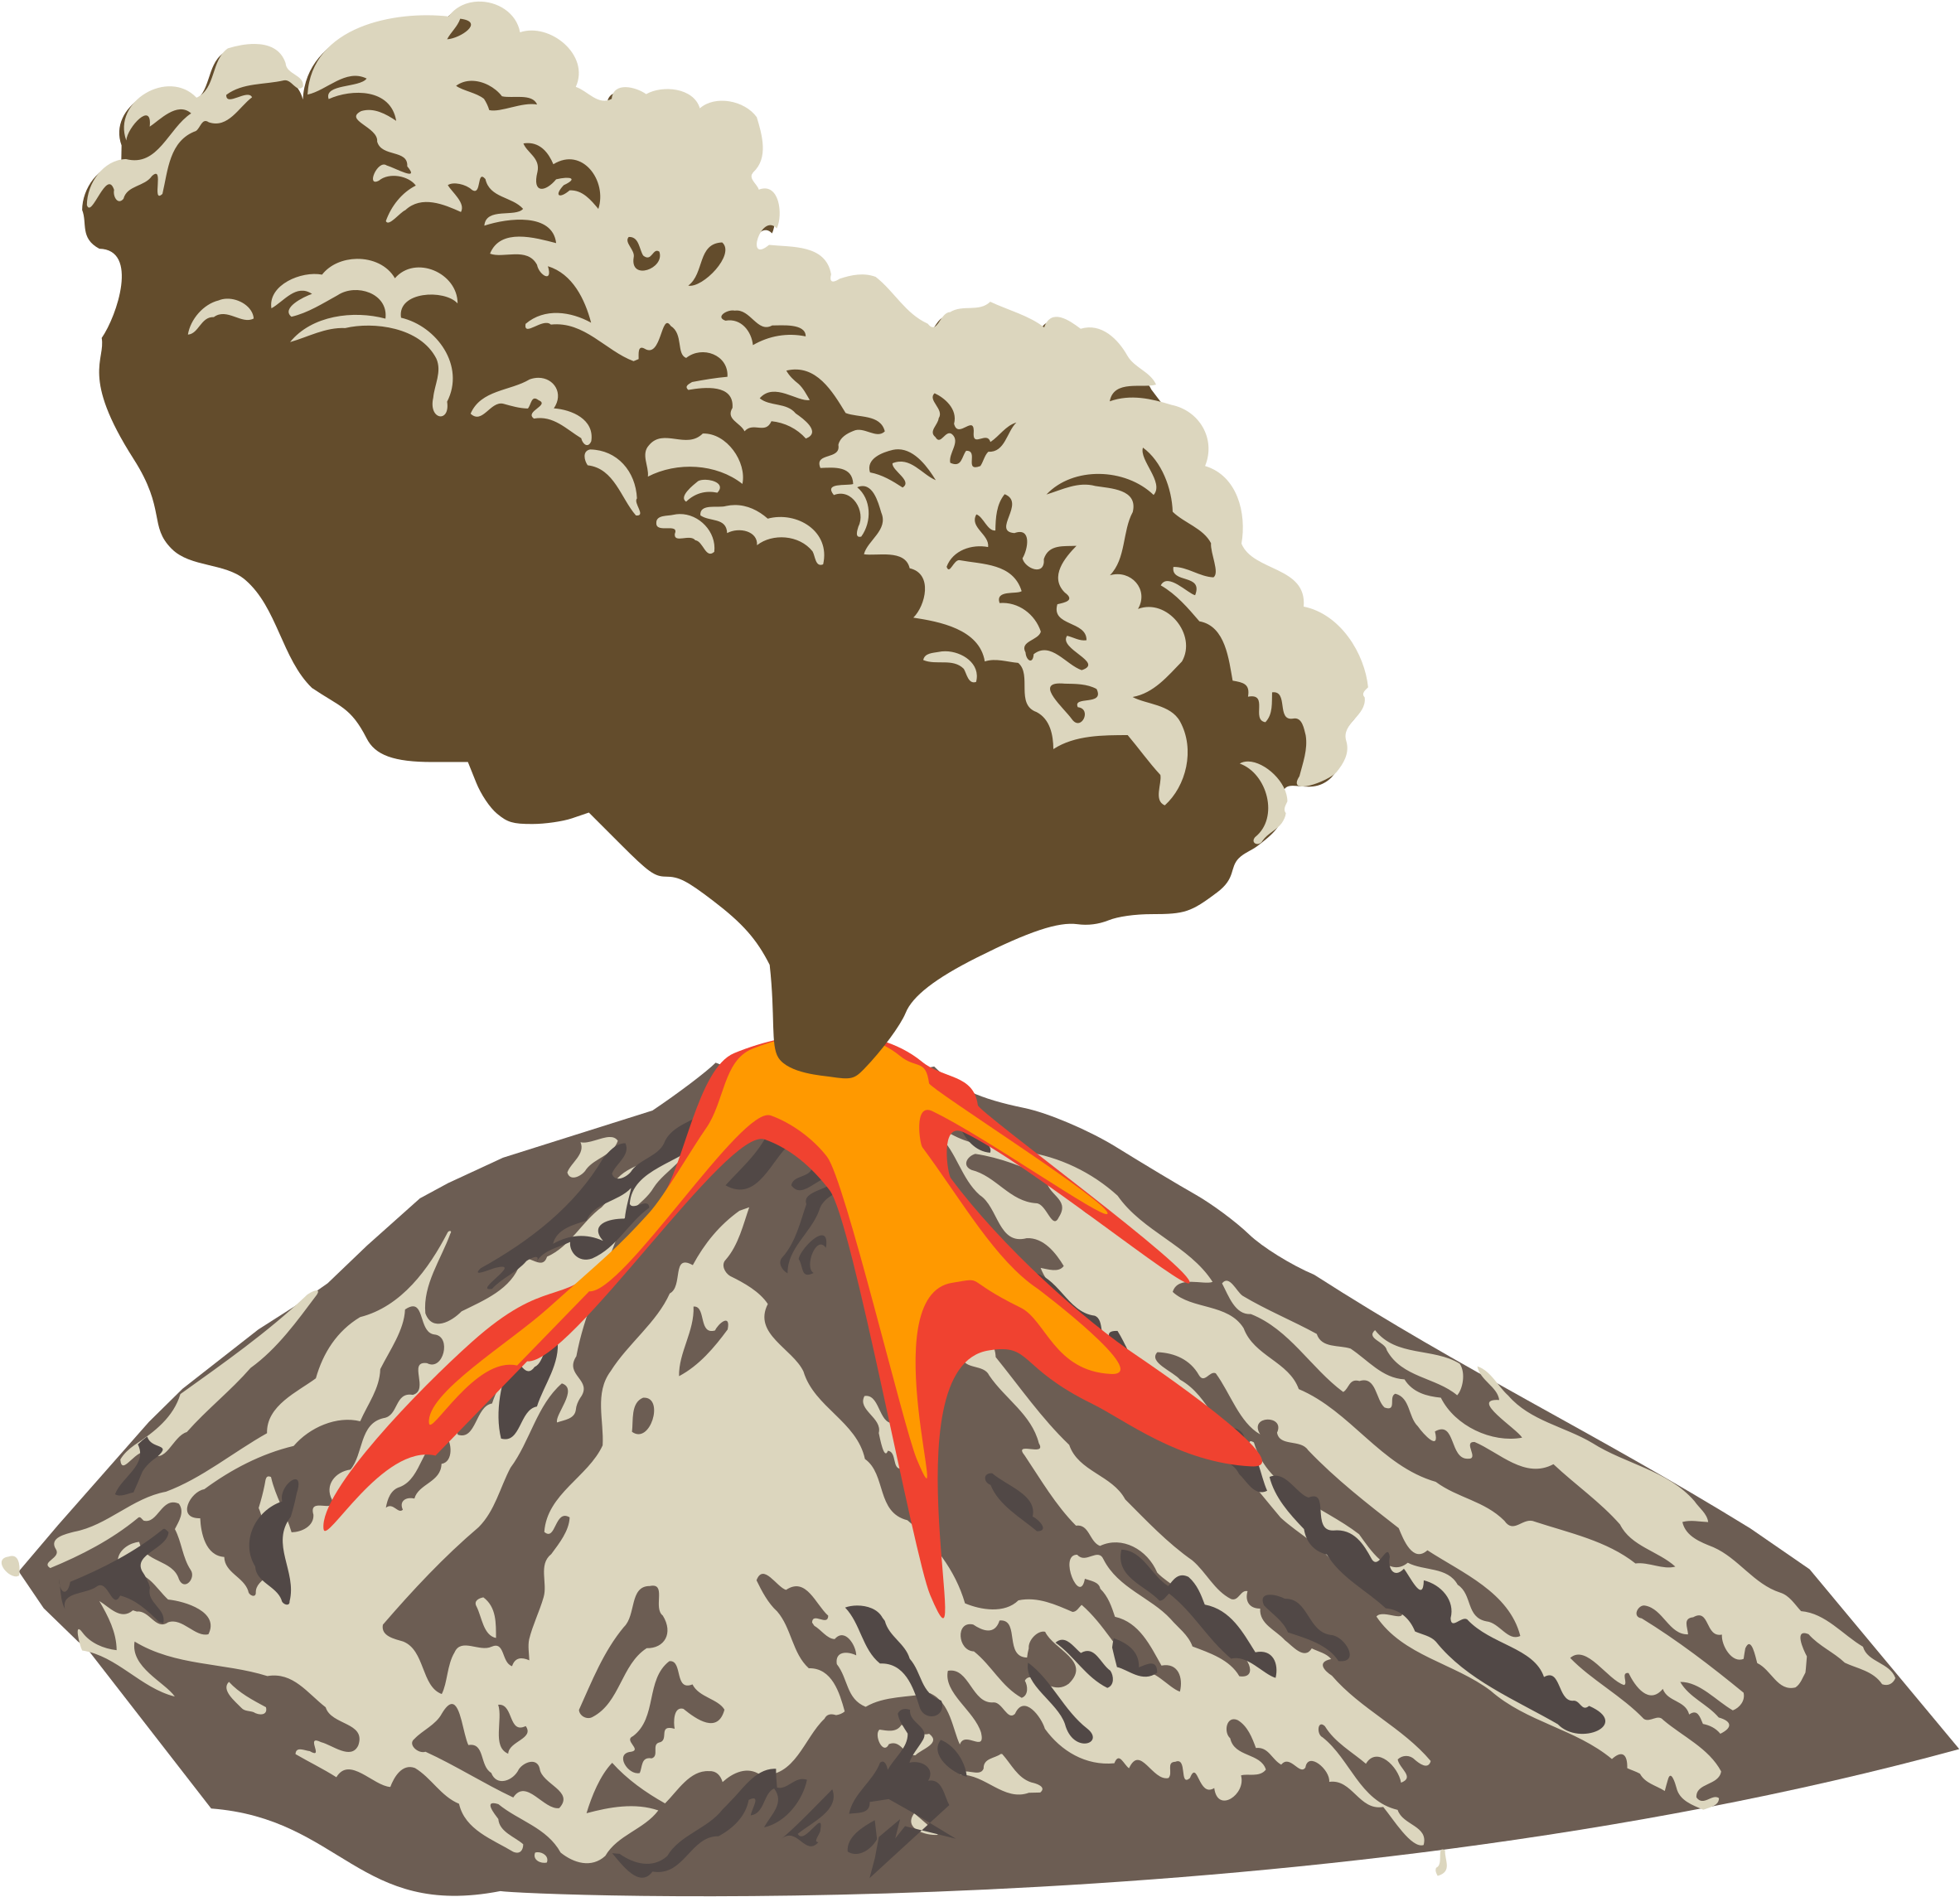 Volcano Png Clipart Png Mart With Volcano Clipart Volcano Png